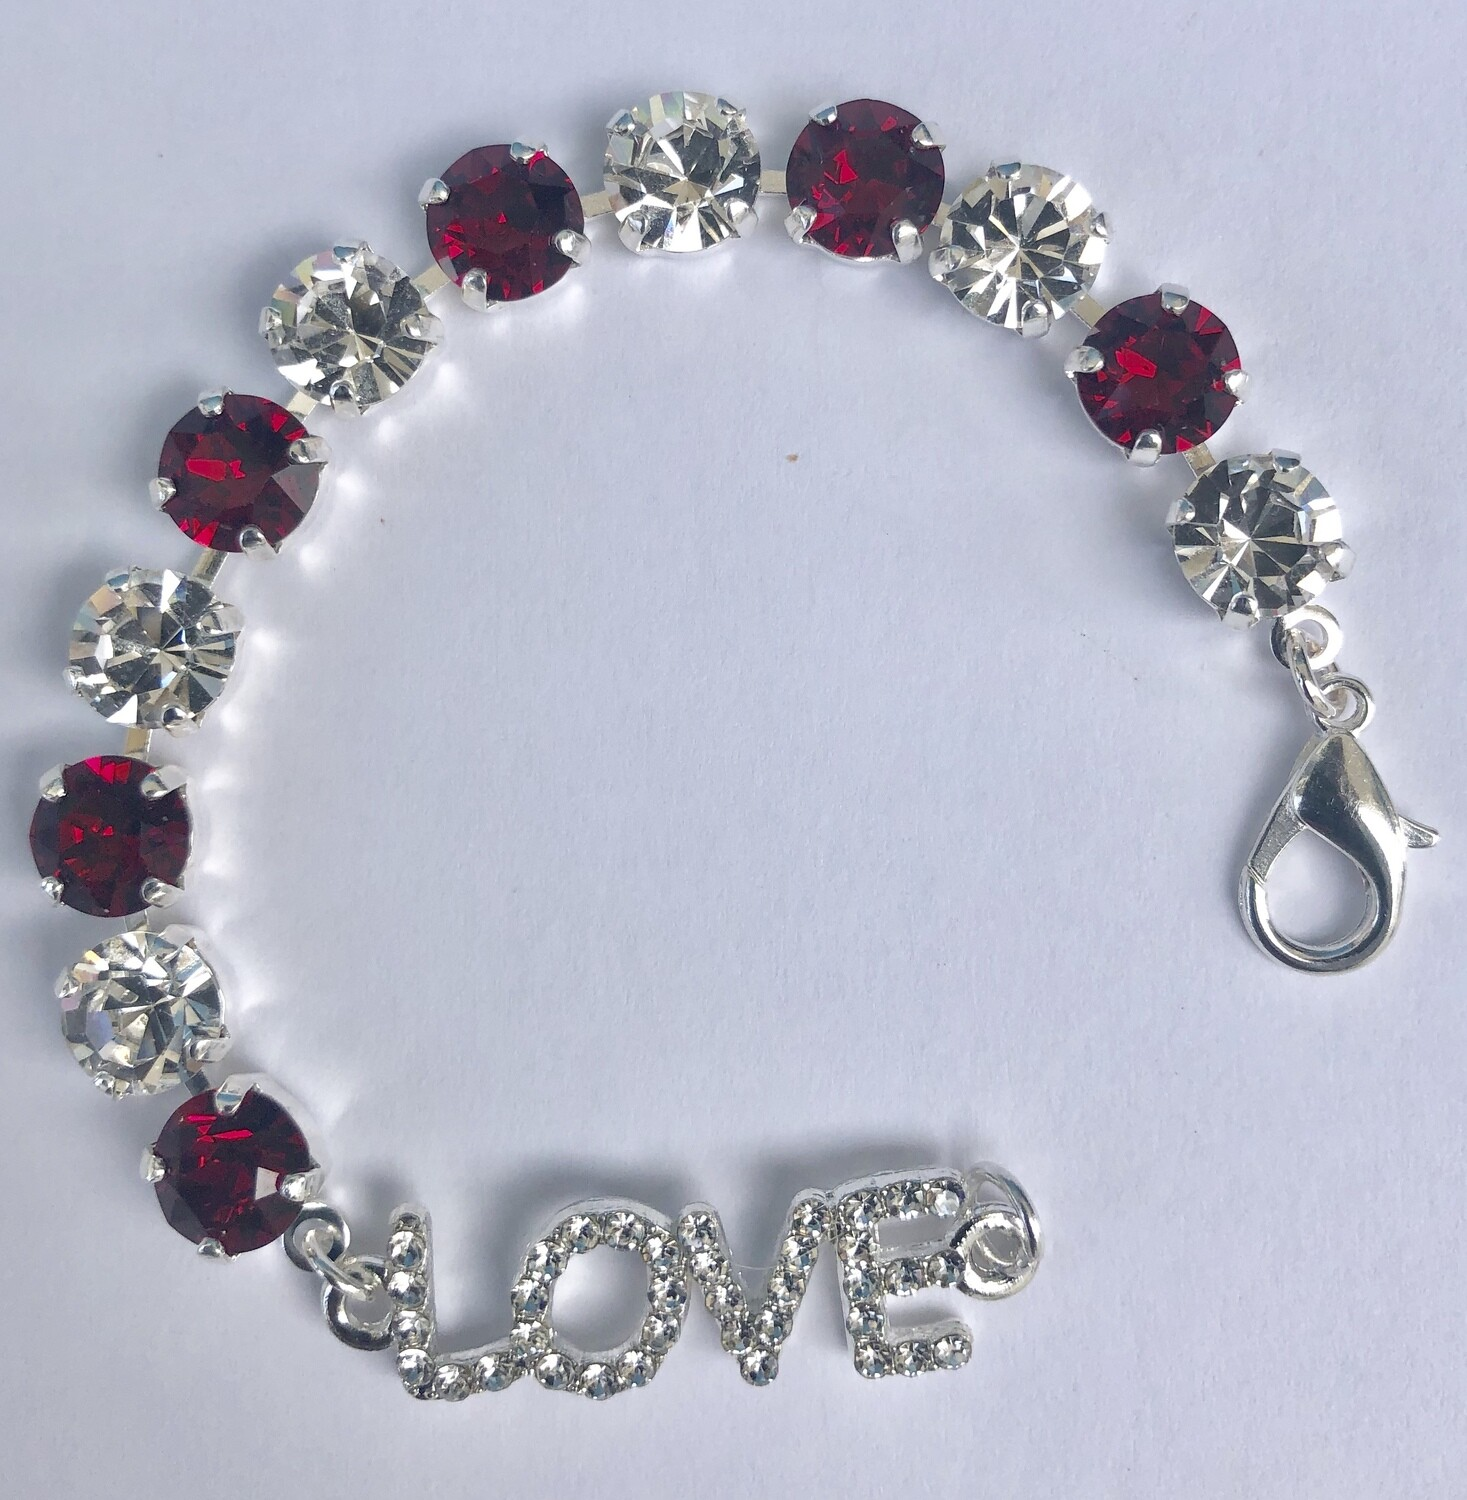 """Everlasting"" Love Bracelet consists of ruby red and clear crystals with a silver finish.  Handmade by Raine"